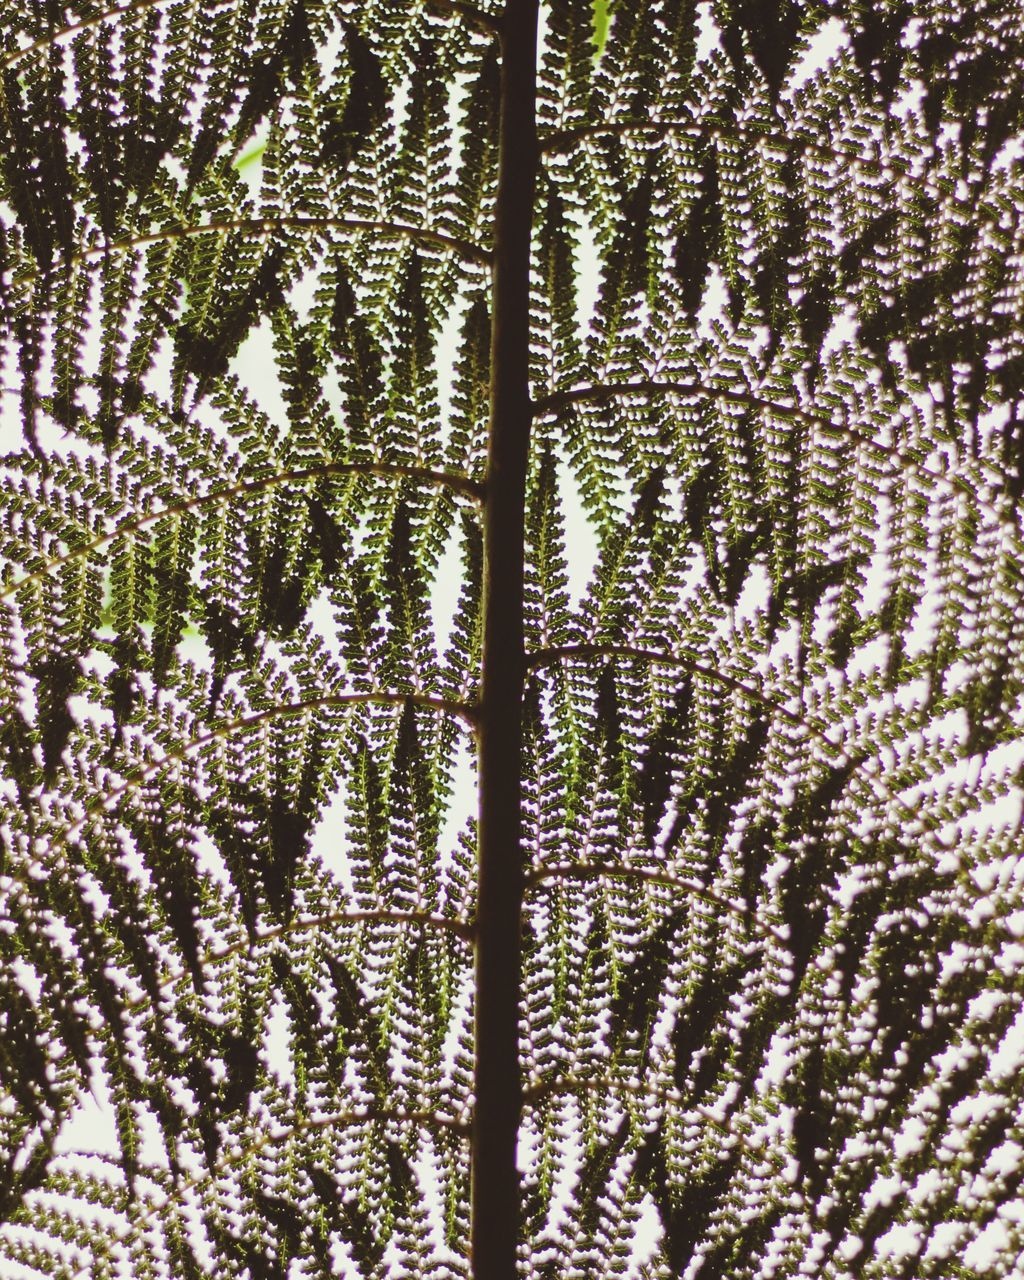 backgrounds, full frame, pattern, no people, close-up, textured, plant, growth, nature, day, tree, outdoors, beauty in nature